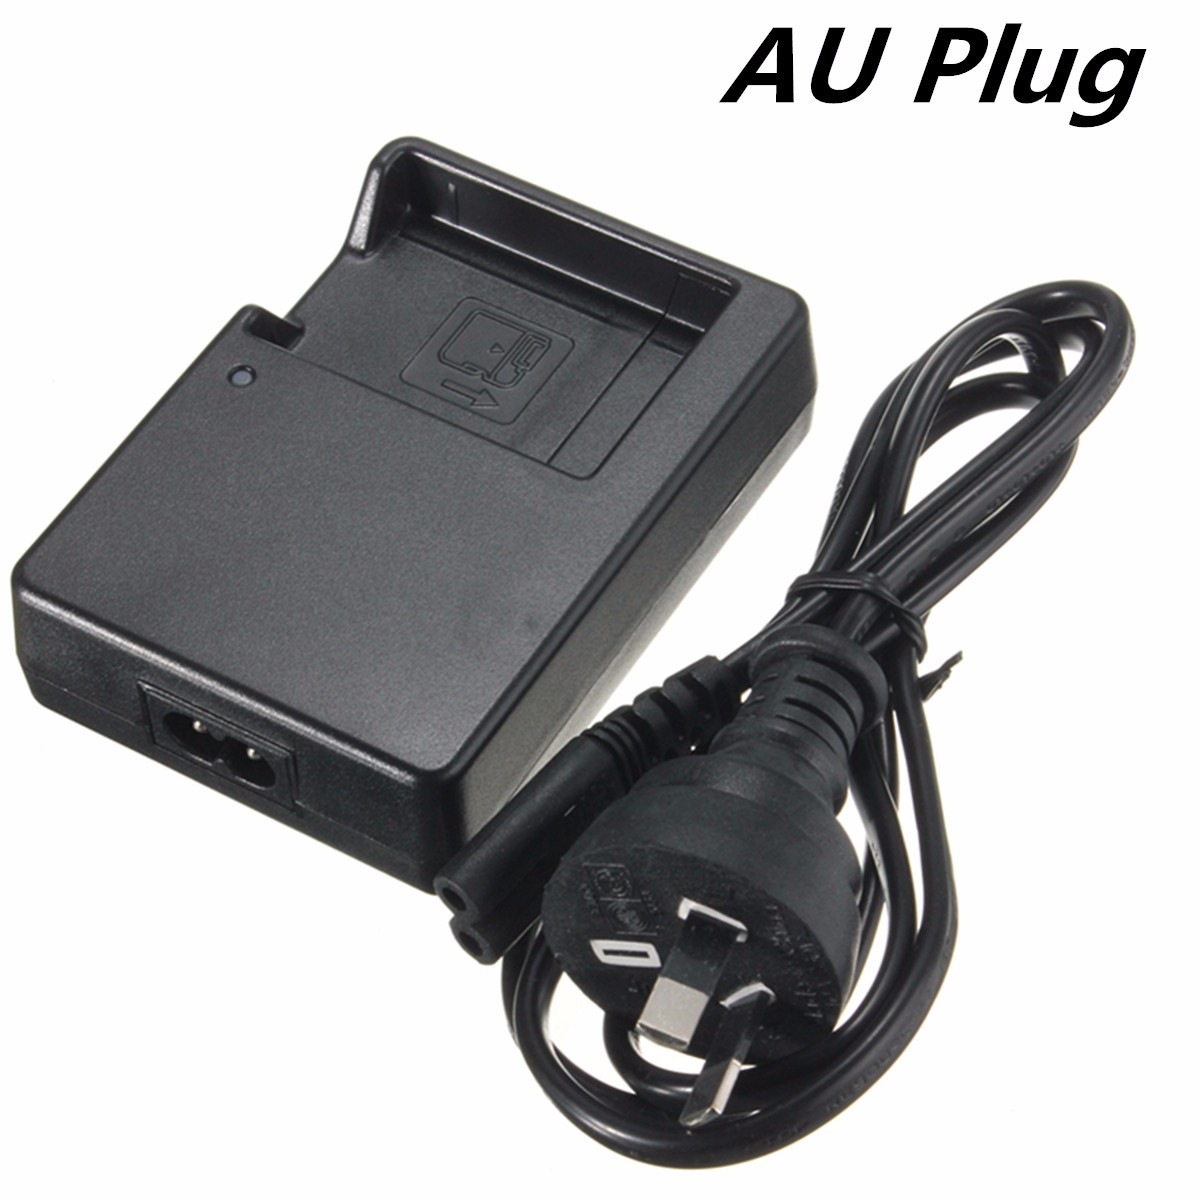 Mains Camera Wall Battery Charger Mh 24 For Nikon D3100